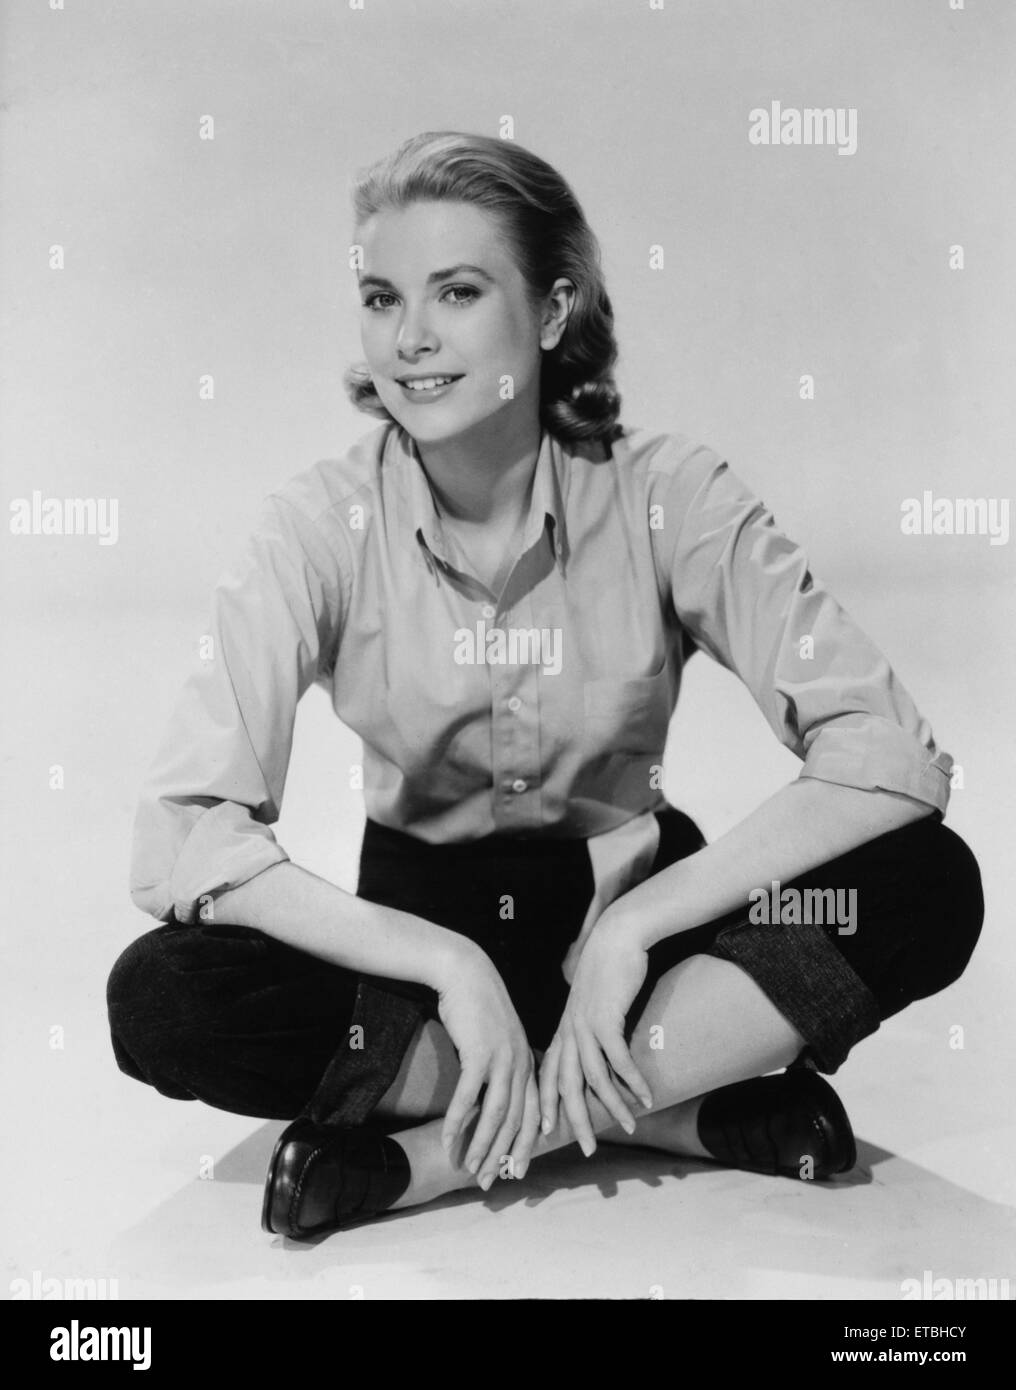 Actress Grace Kelly, Publicity Portrait in Casual Clothes, 1954 - Stock Image